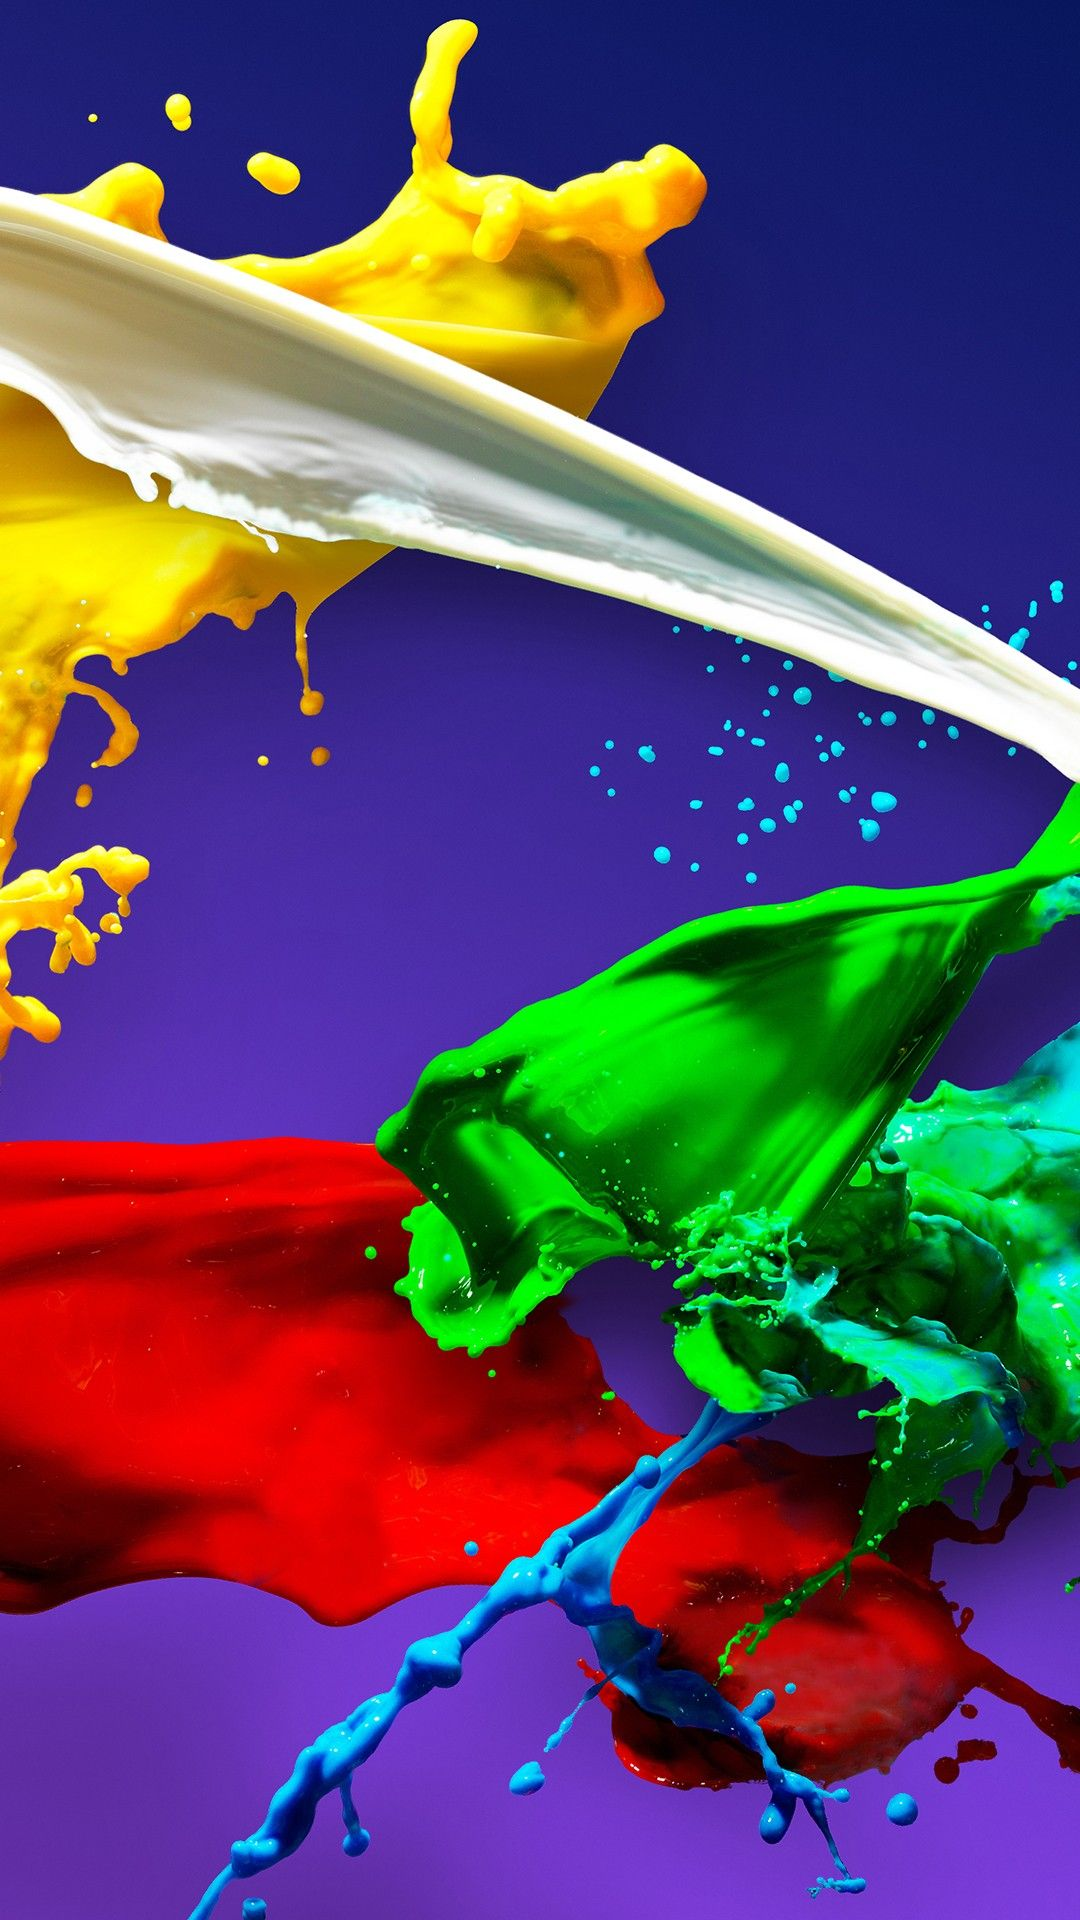 Misc Colors Splash wallpapers hd 4k background for